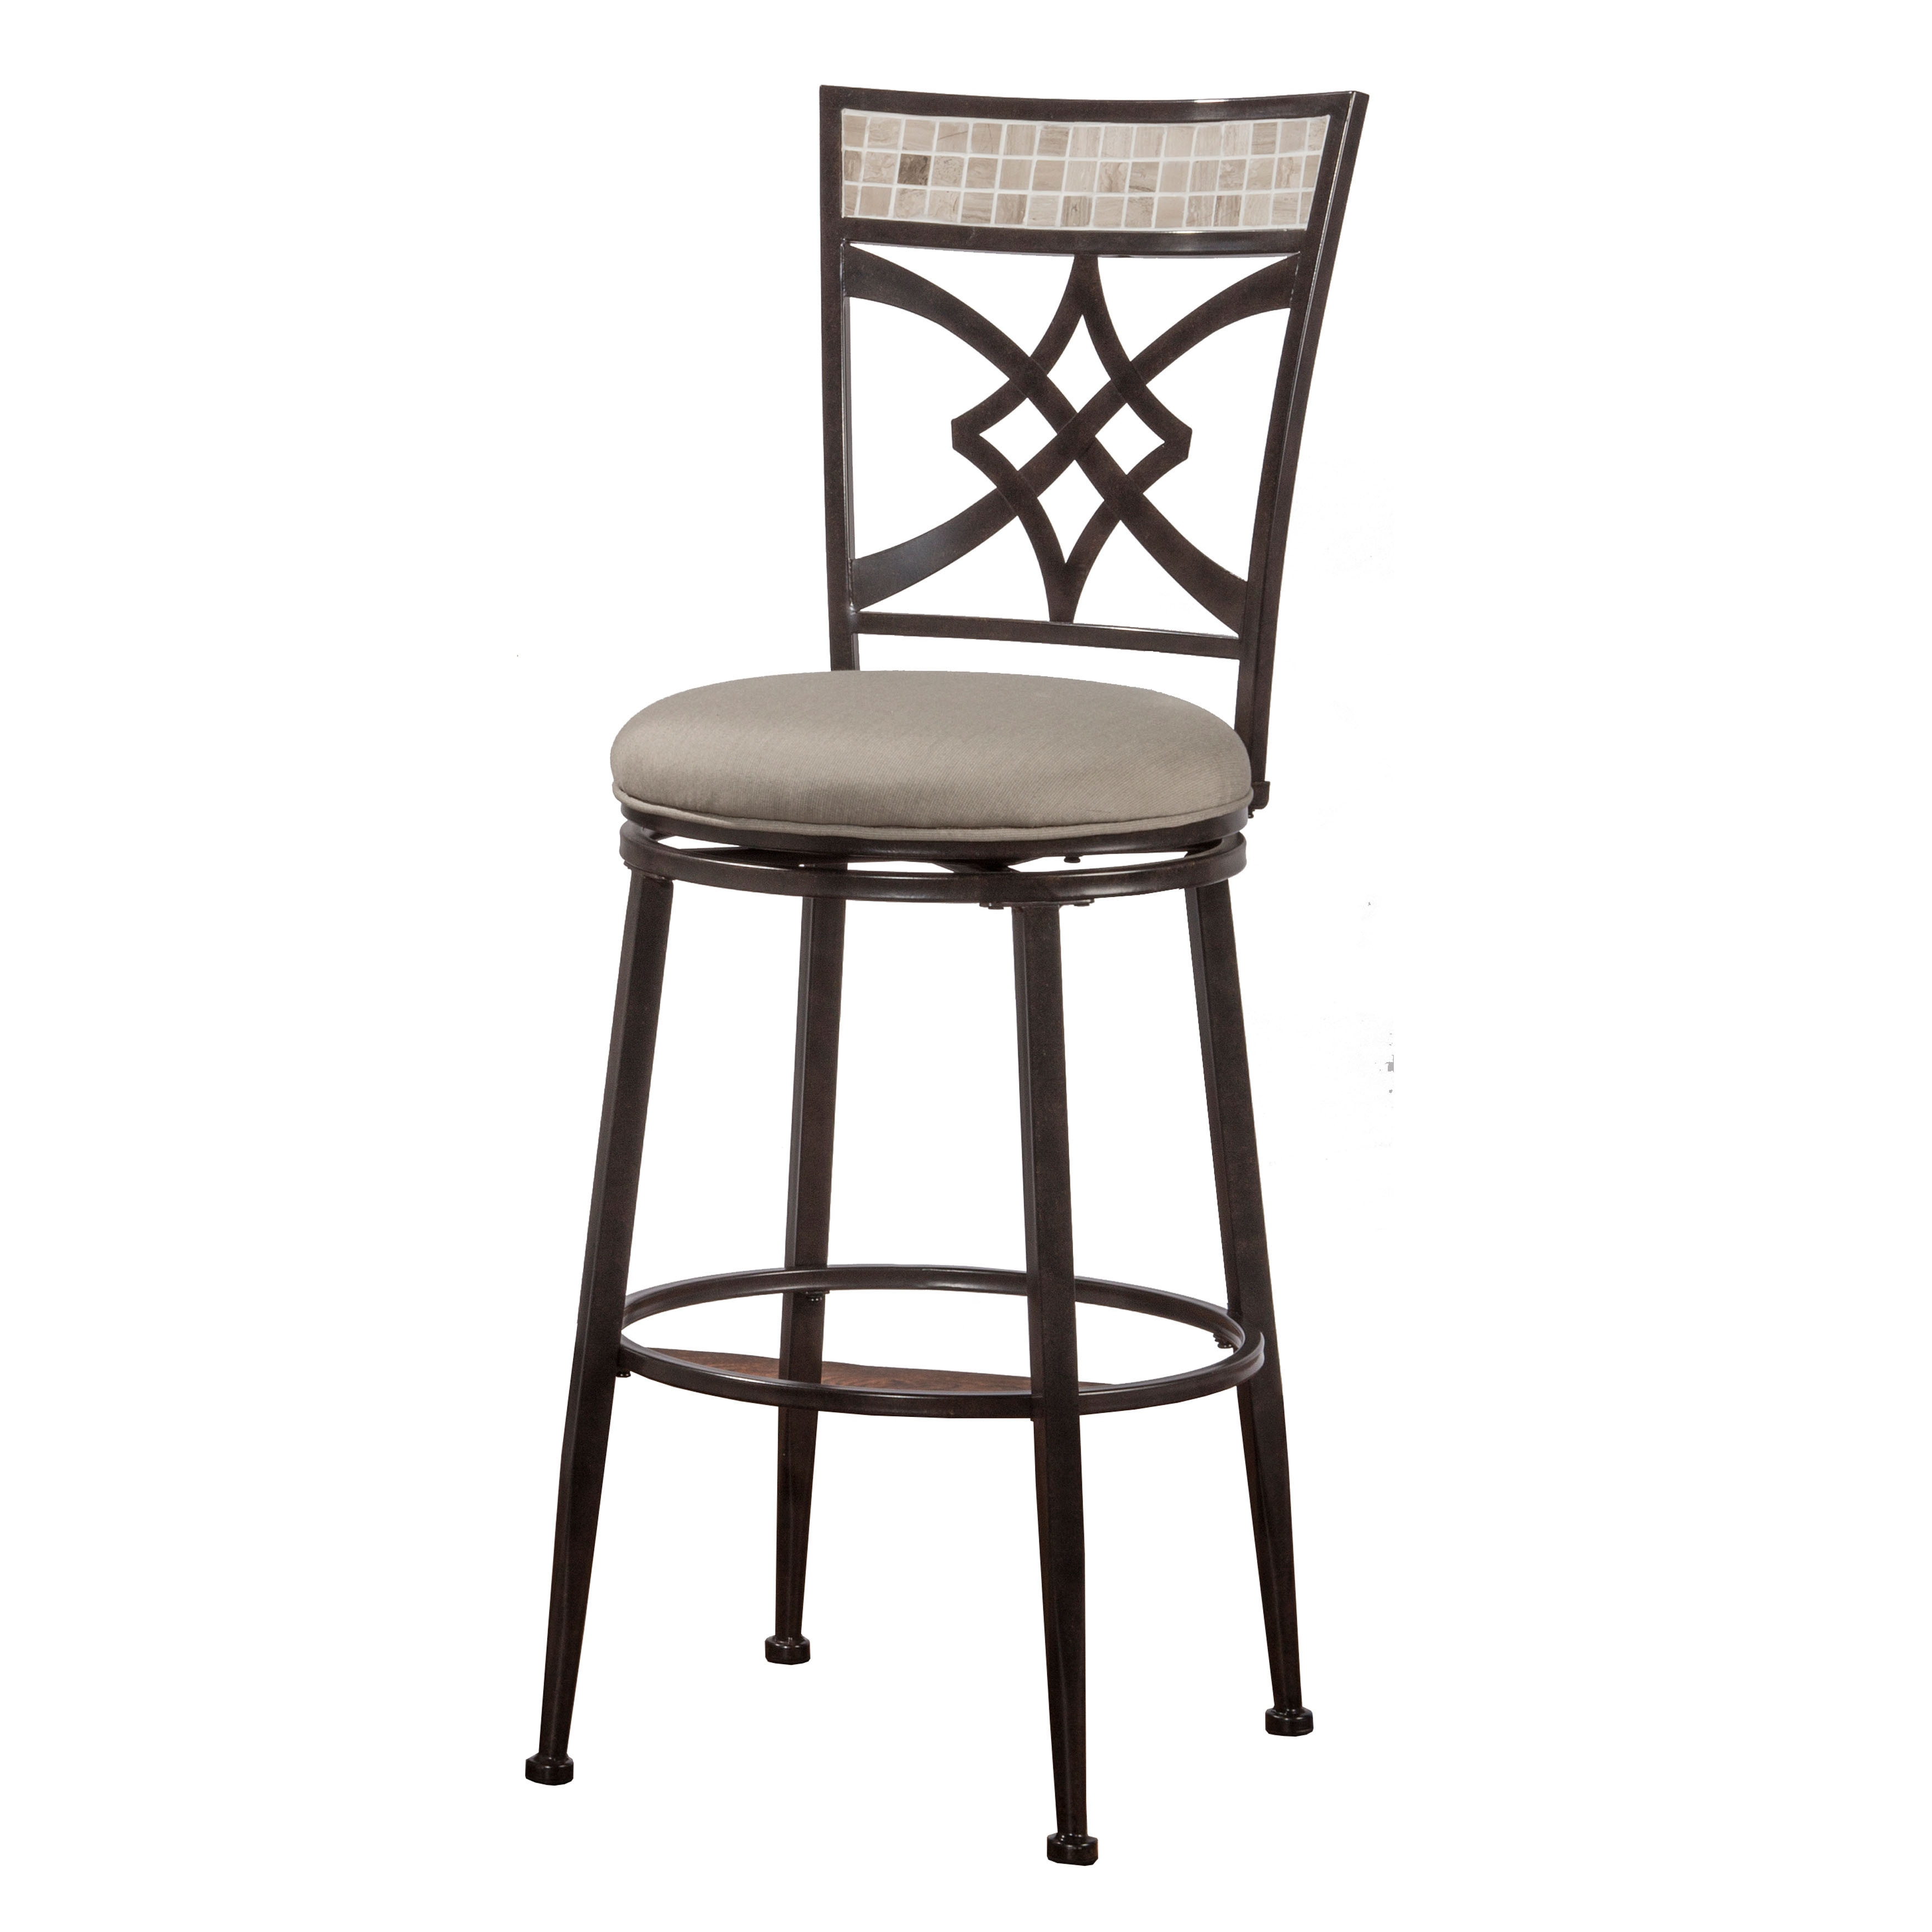 Hilale Furniture Halstead Indoor Outdoor Swivel Counter Stool In Midnight Mocha Finish Free Shipping Today 15268965